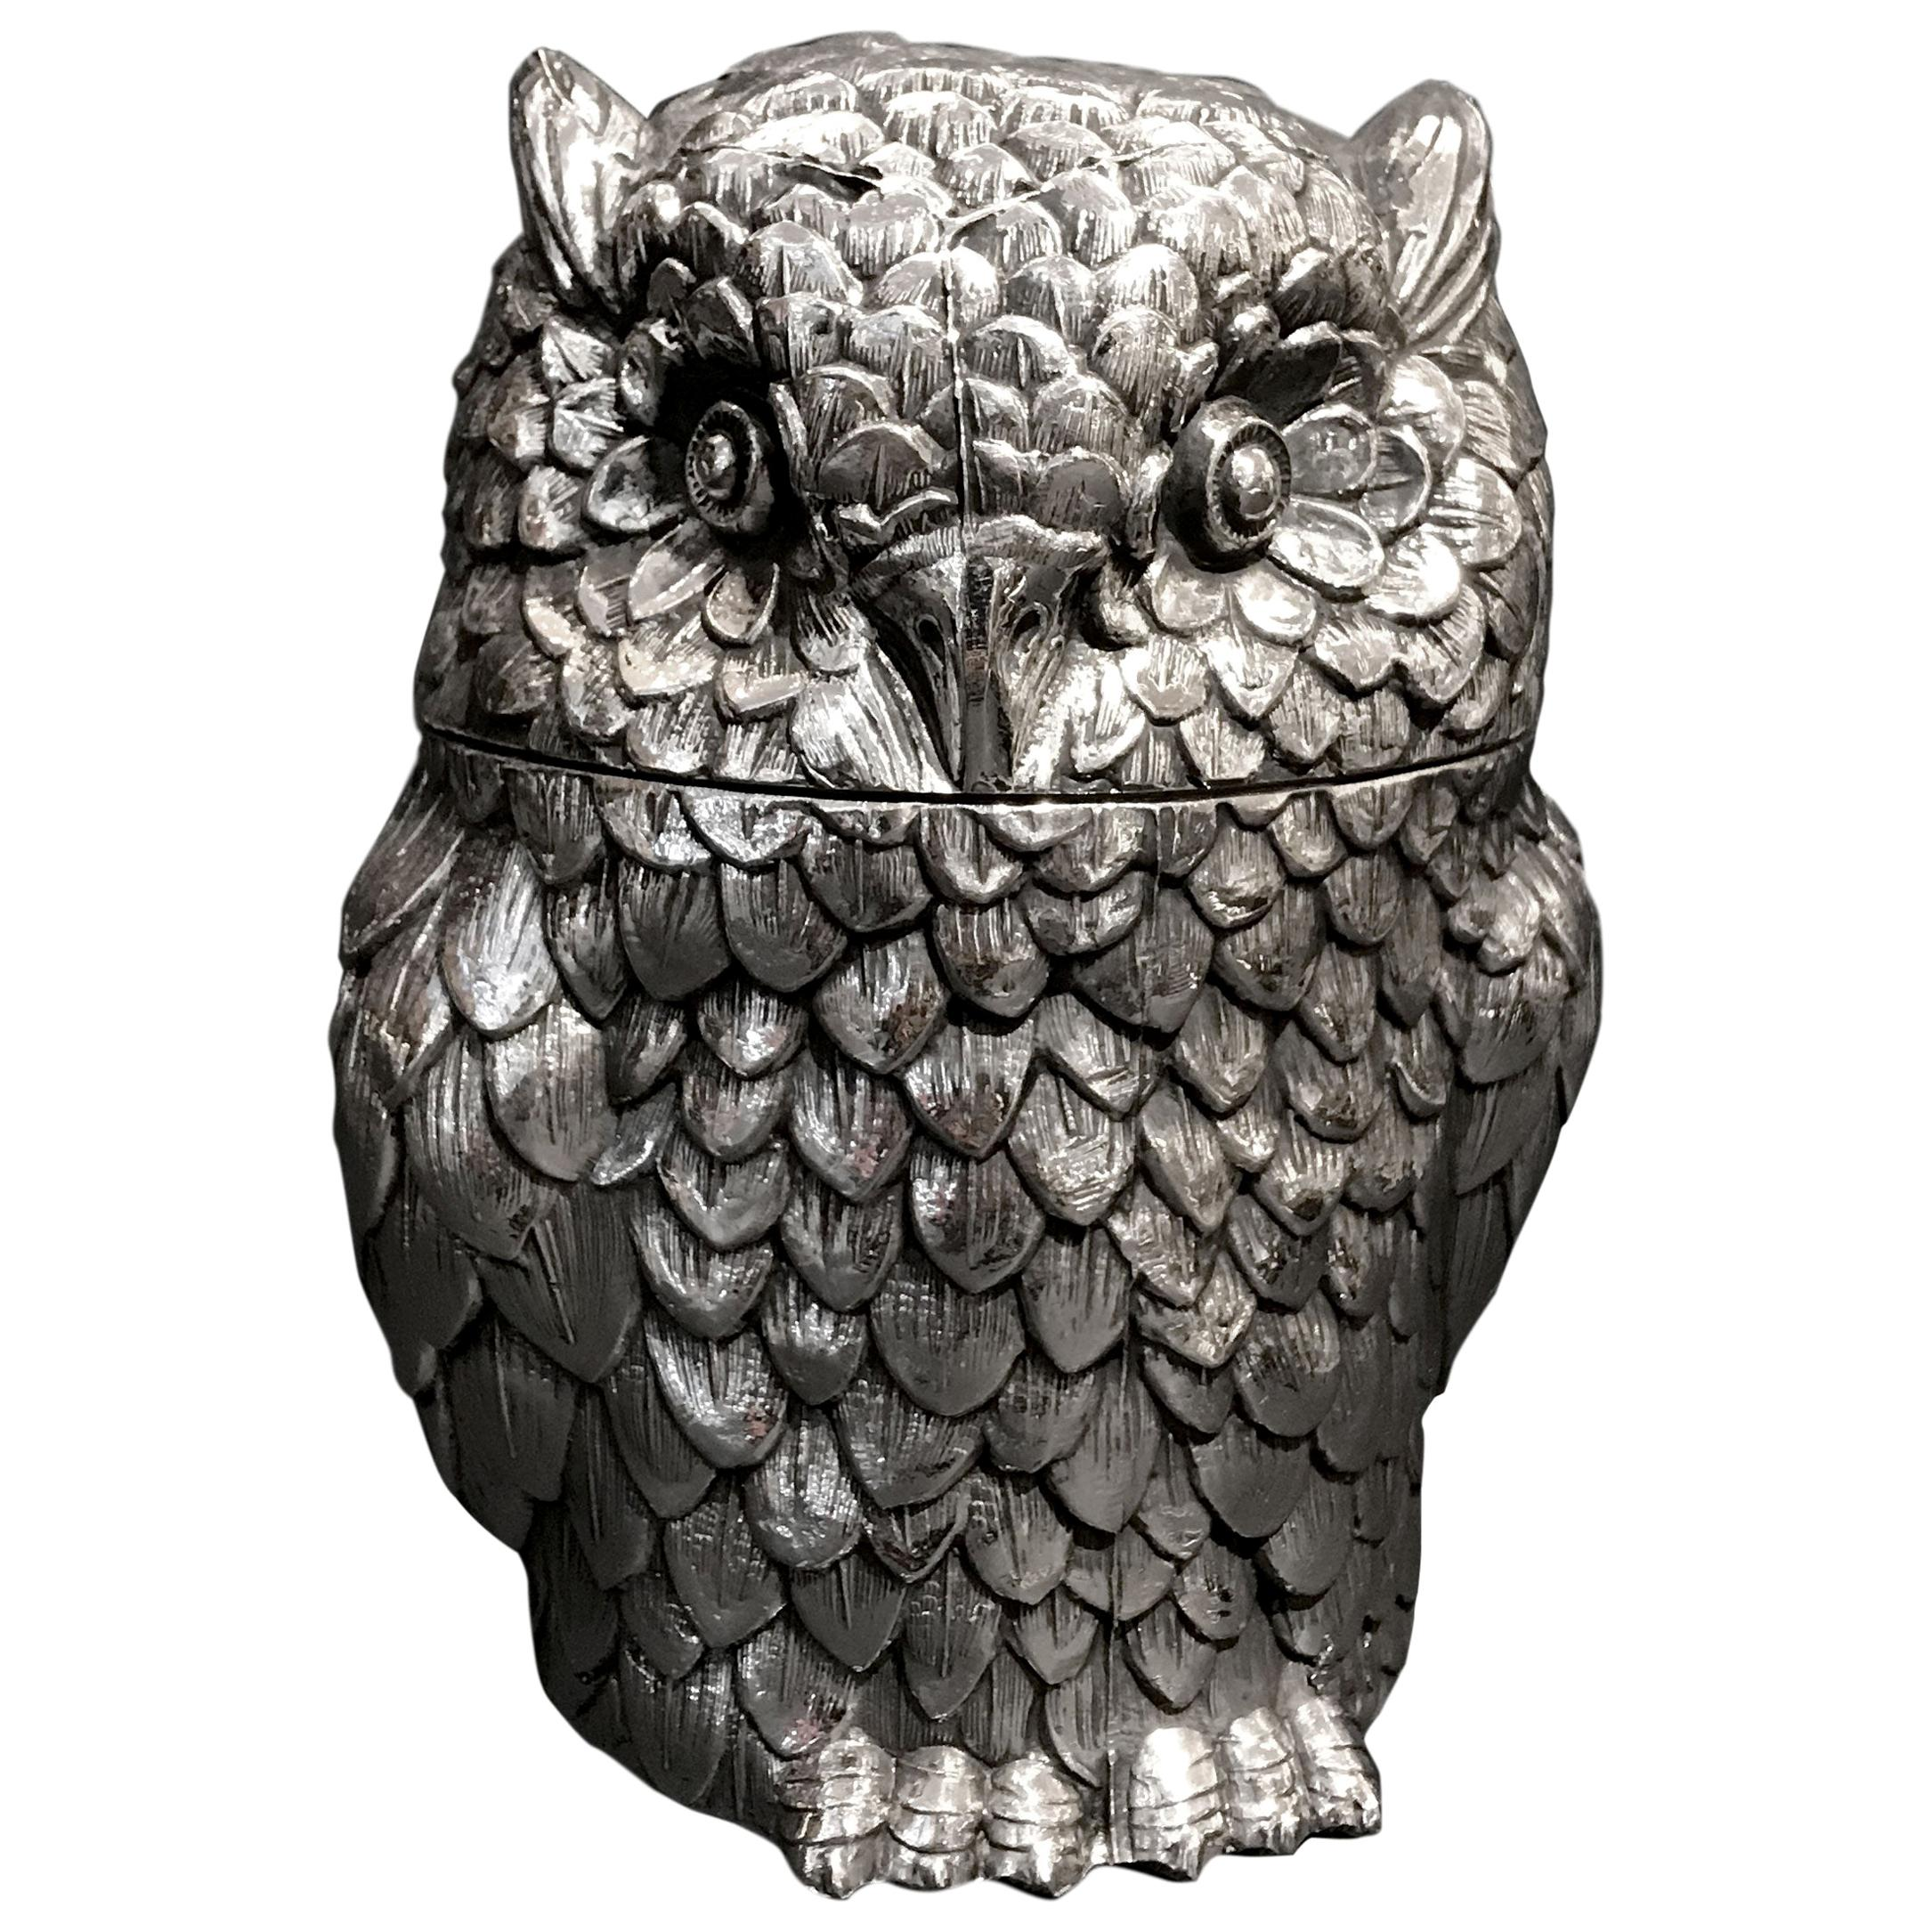 Owl Ice Bucket Designed by Mauro Manetti, Silver Plated, circa 1970